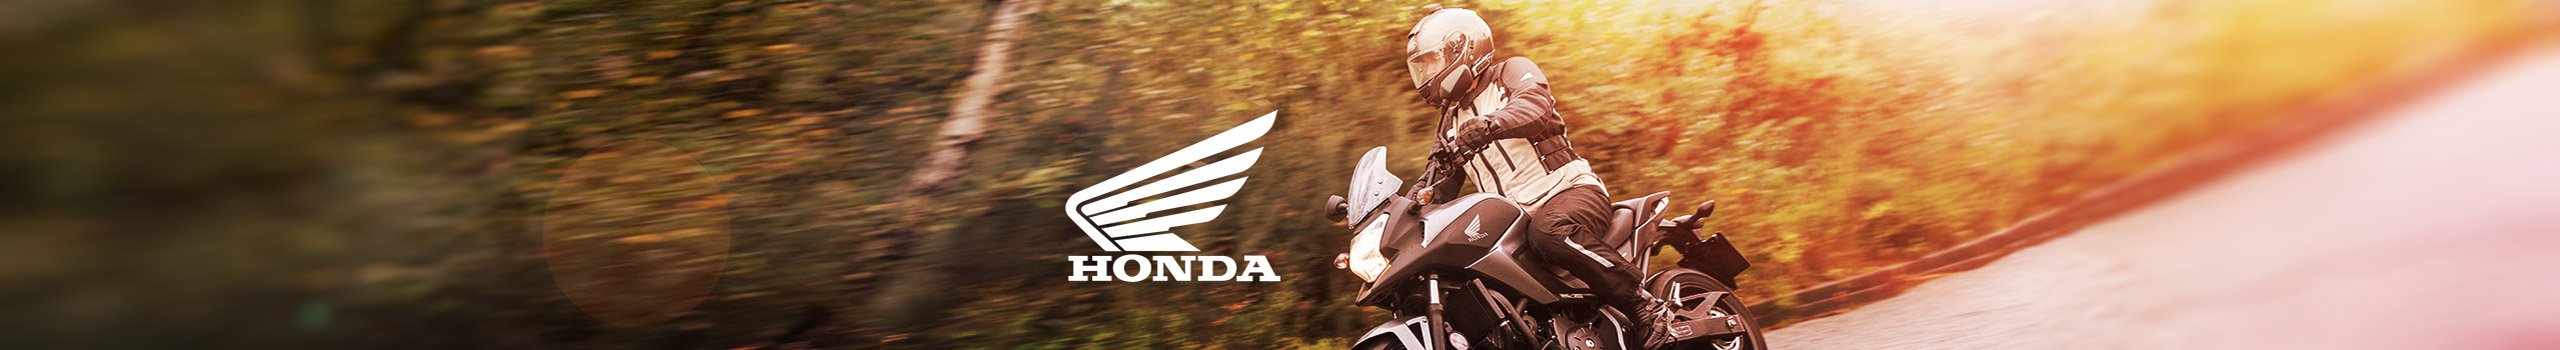 Motorcycles hero image for Honda